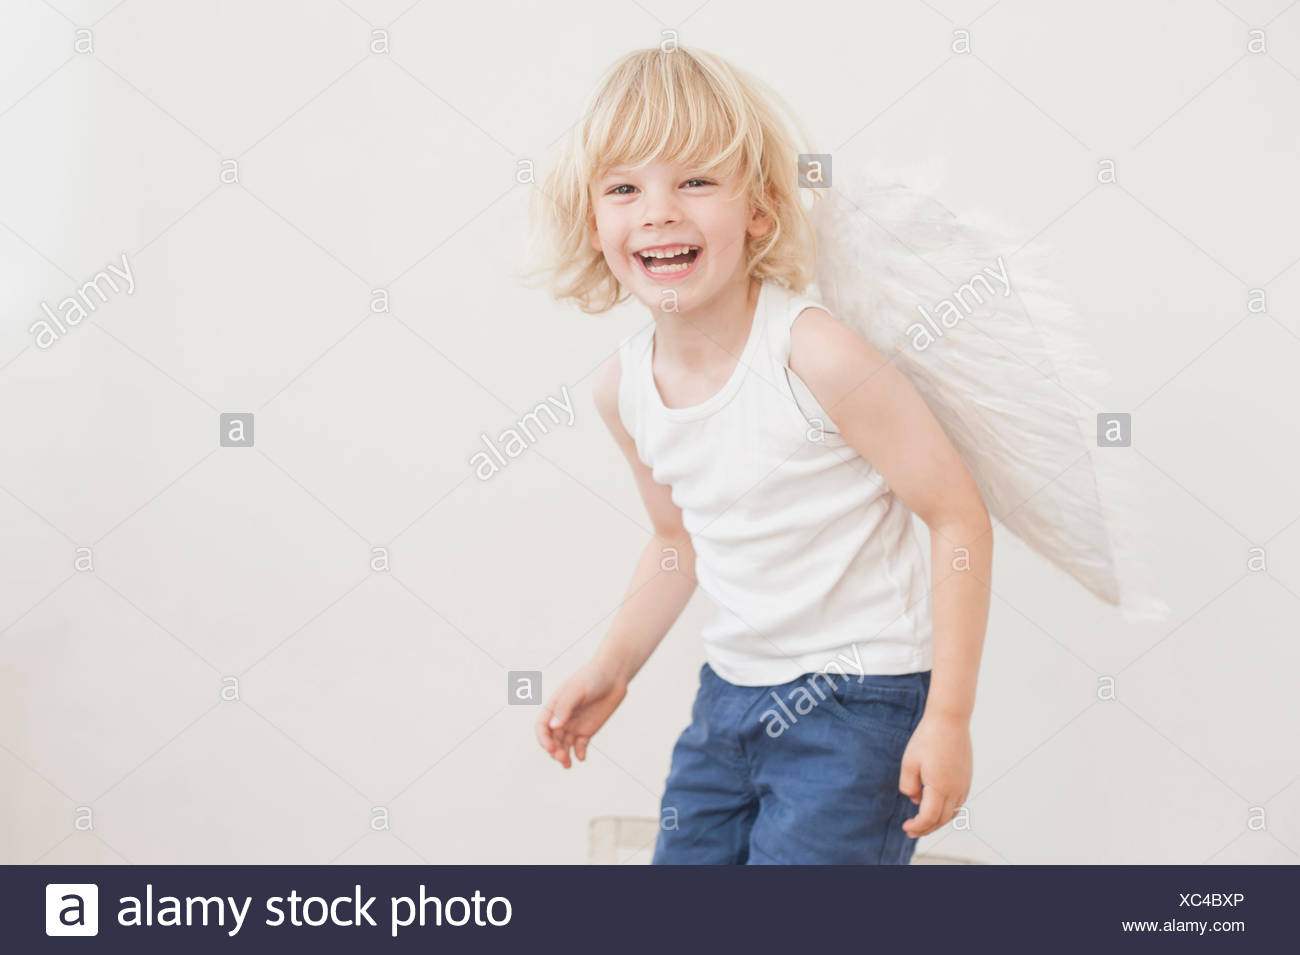 Portrait of laughing little boy with angle wings - Stock Image